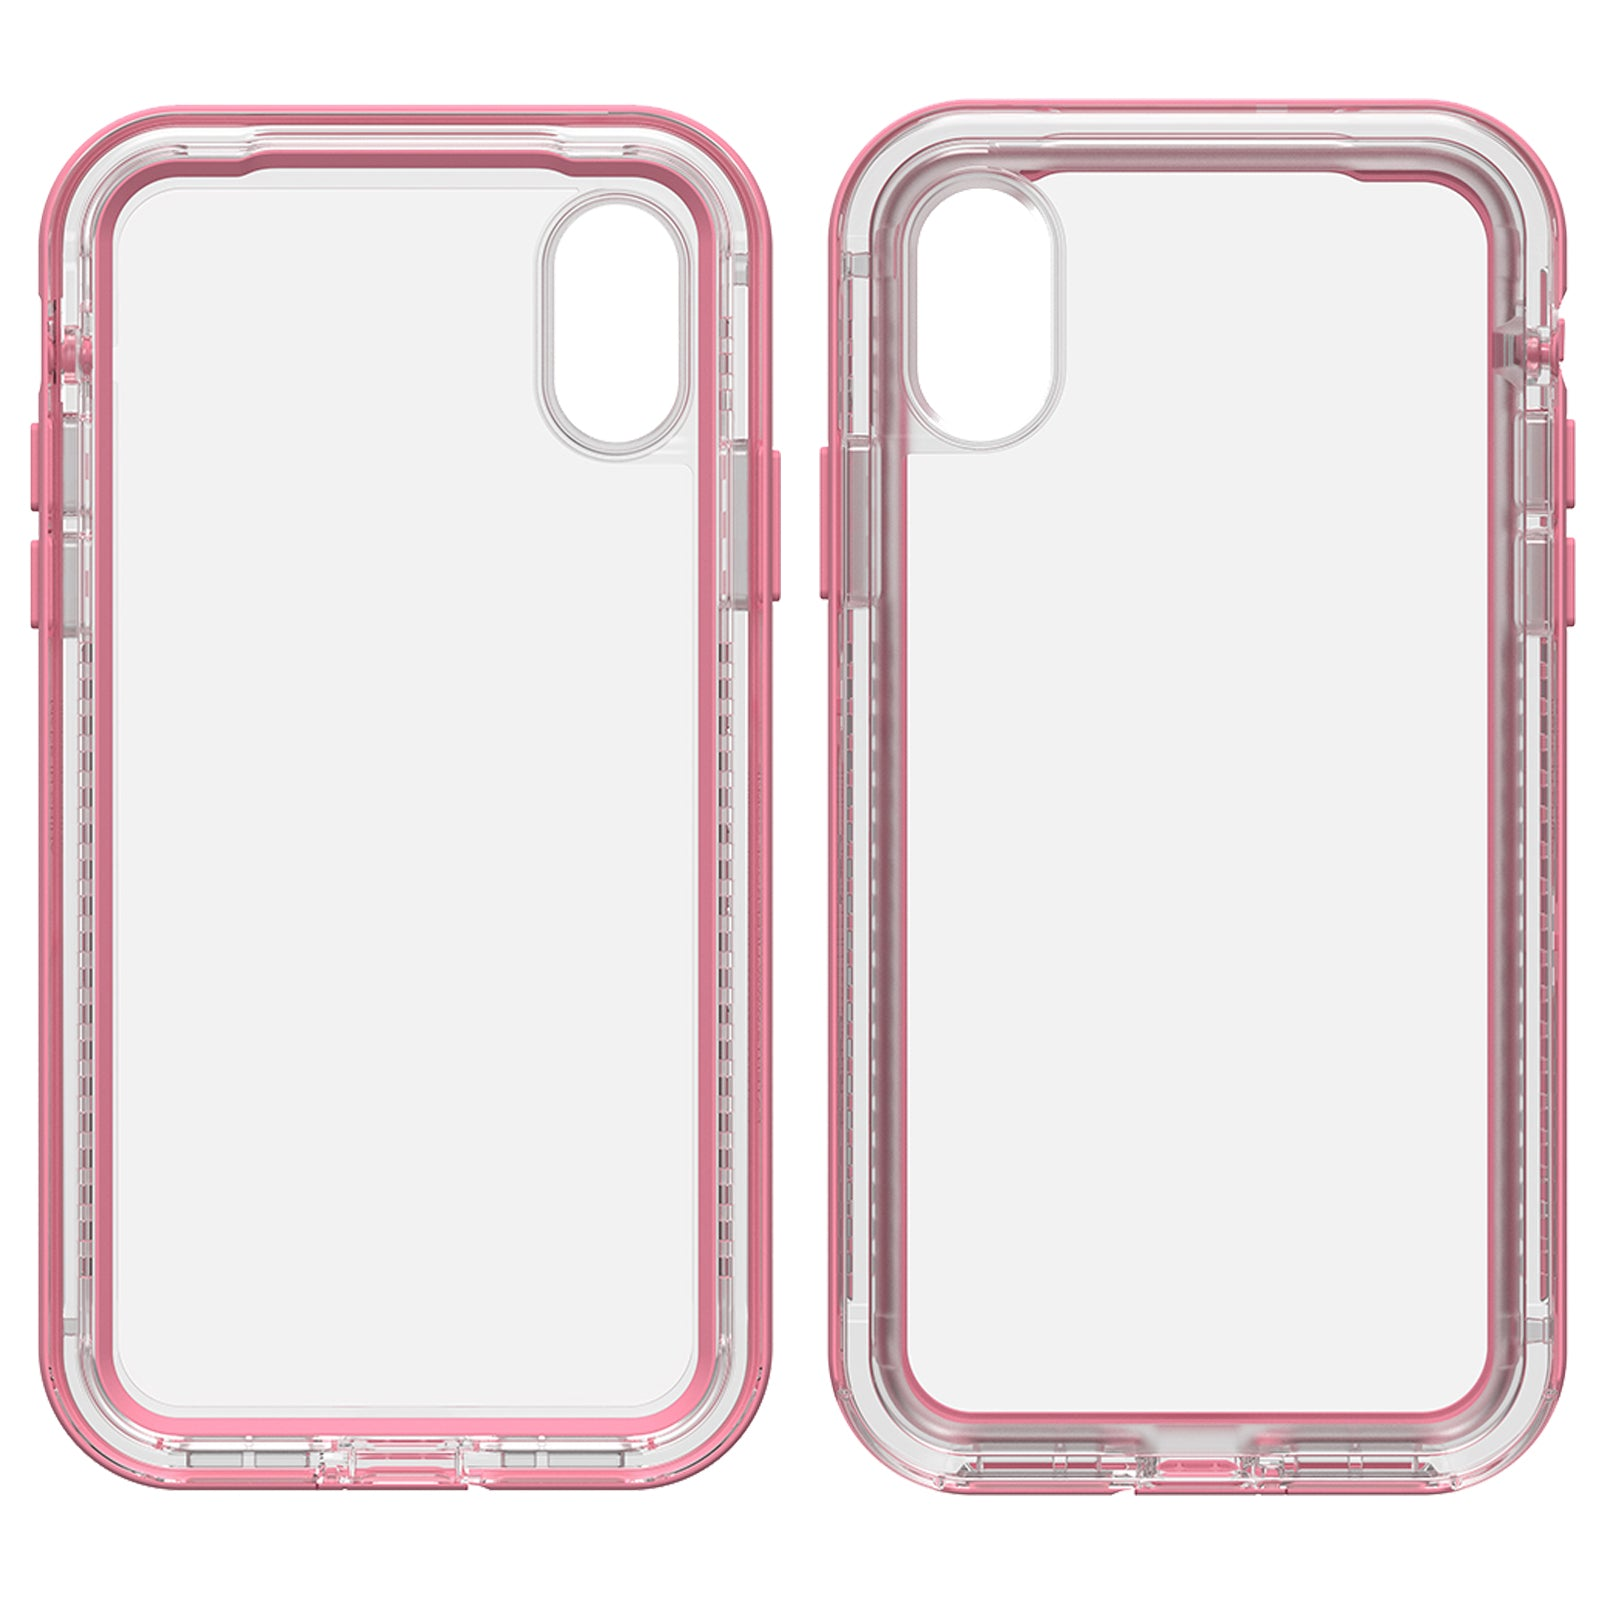 brand new 5691e cfe64 Lifeproof NEXT Case For iPhone X - Cactus Rose